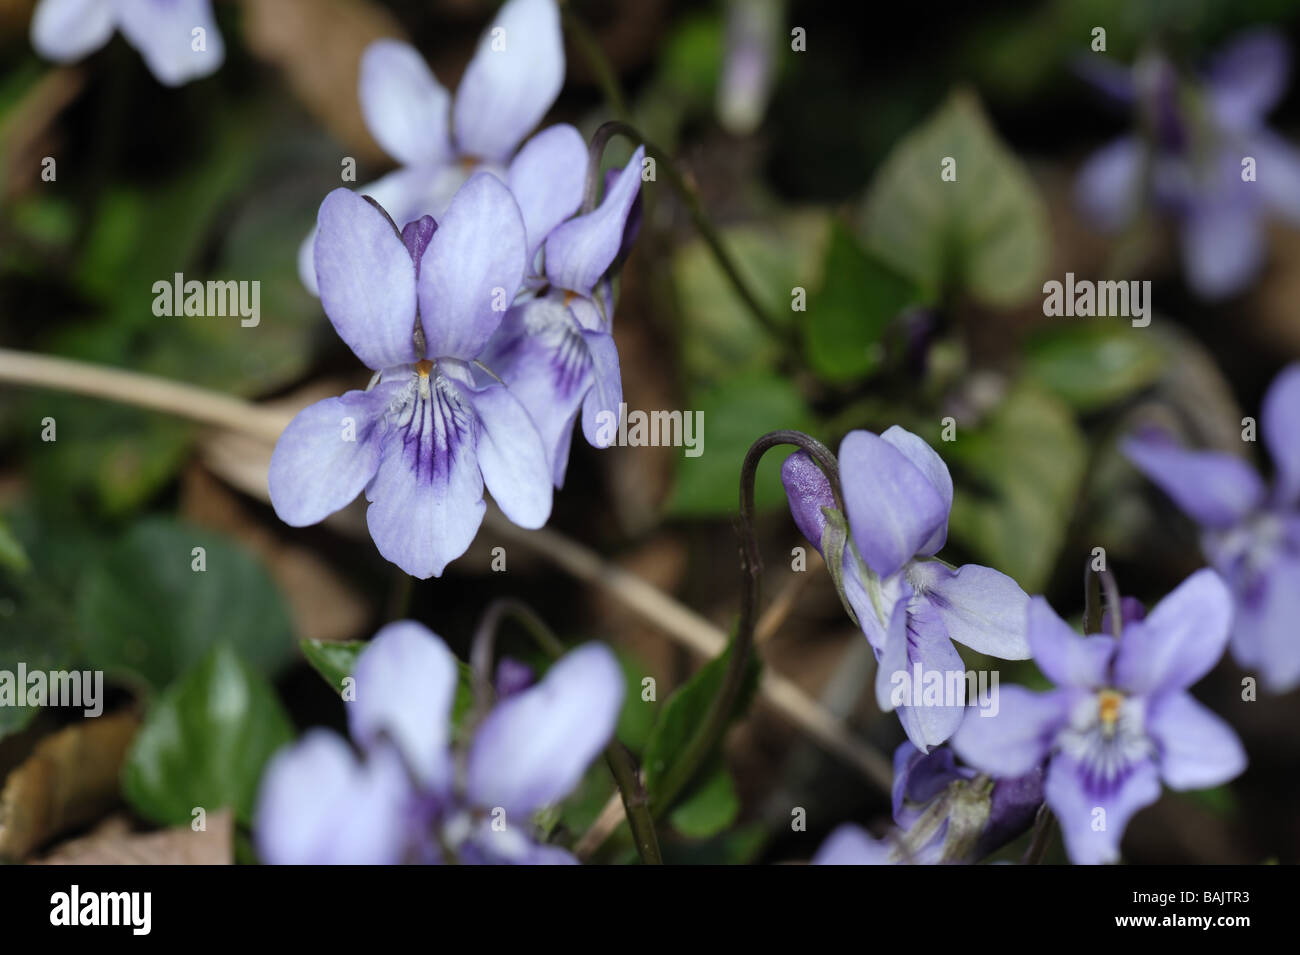 Heath dog violet Viola canina flowering plant - Stock Image